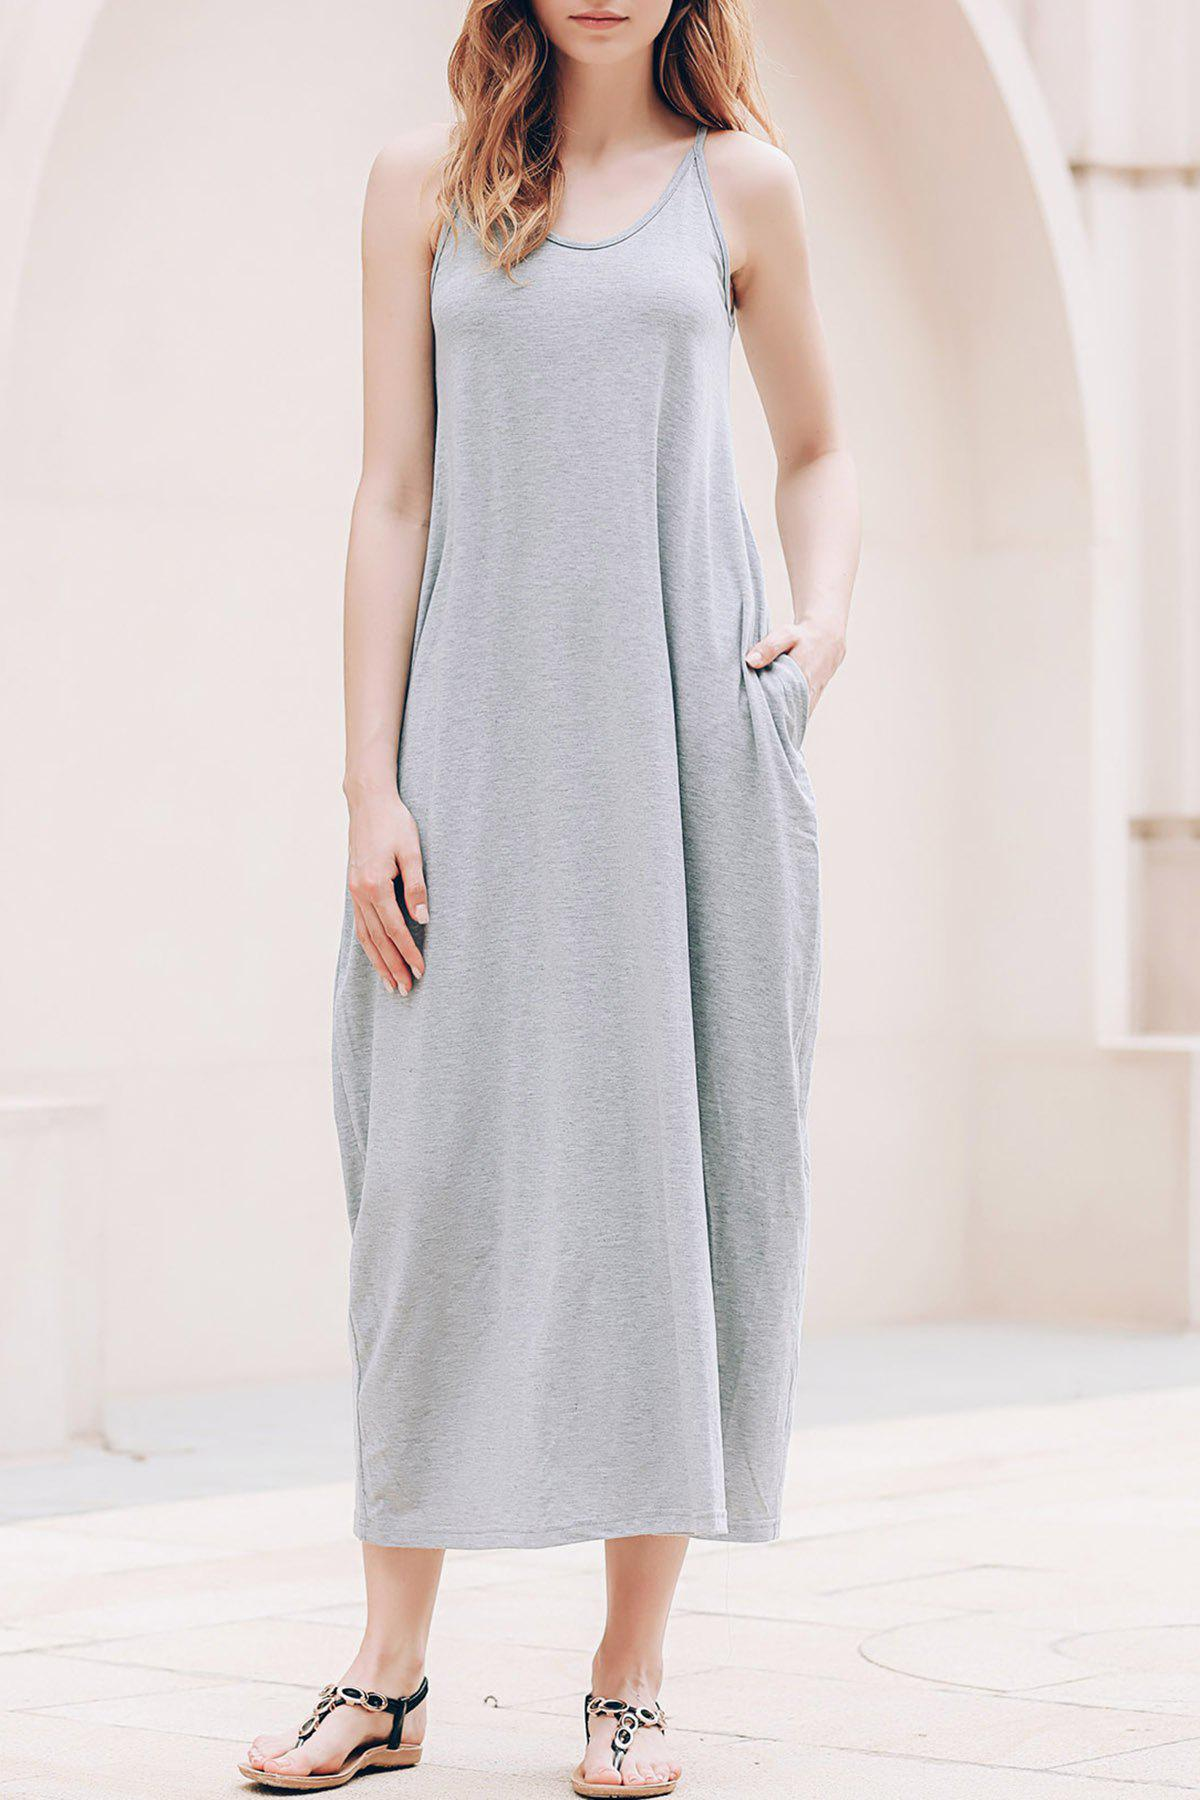 Stylish Spaghetti Strap Solid Color Pocket Design Women's Dress - GRAY S